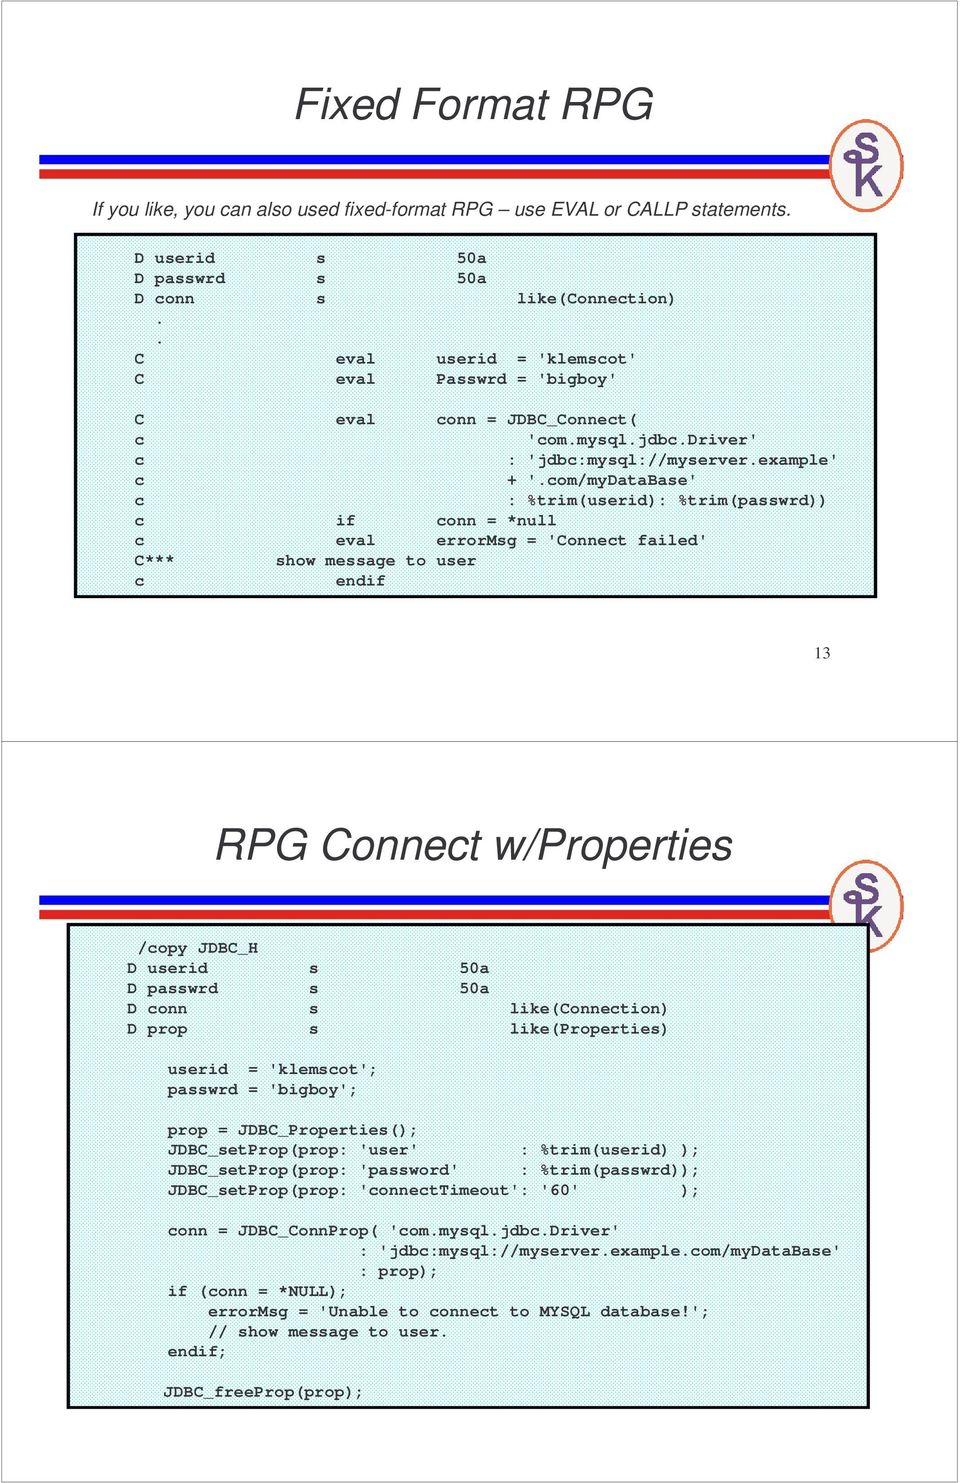 Accesssing External Databases From ILE RPG (with help from Java) - PDF